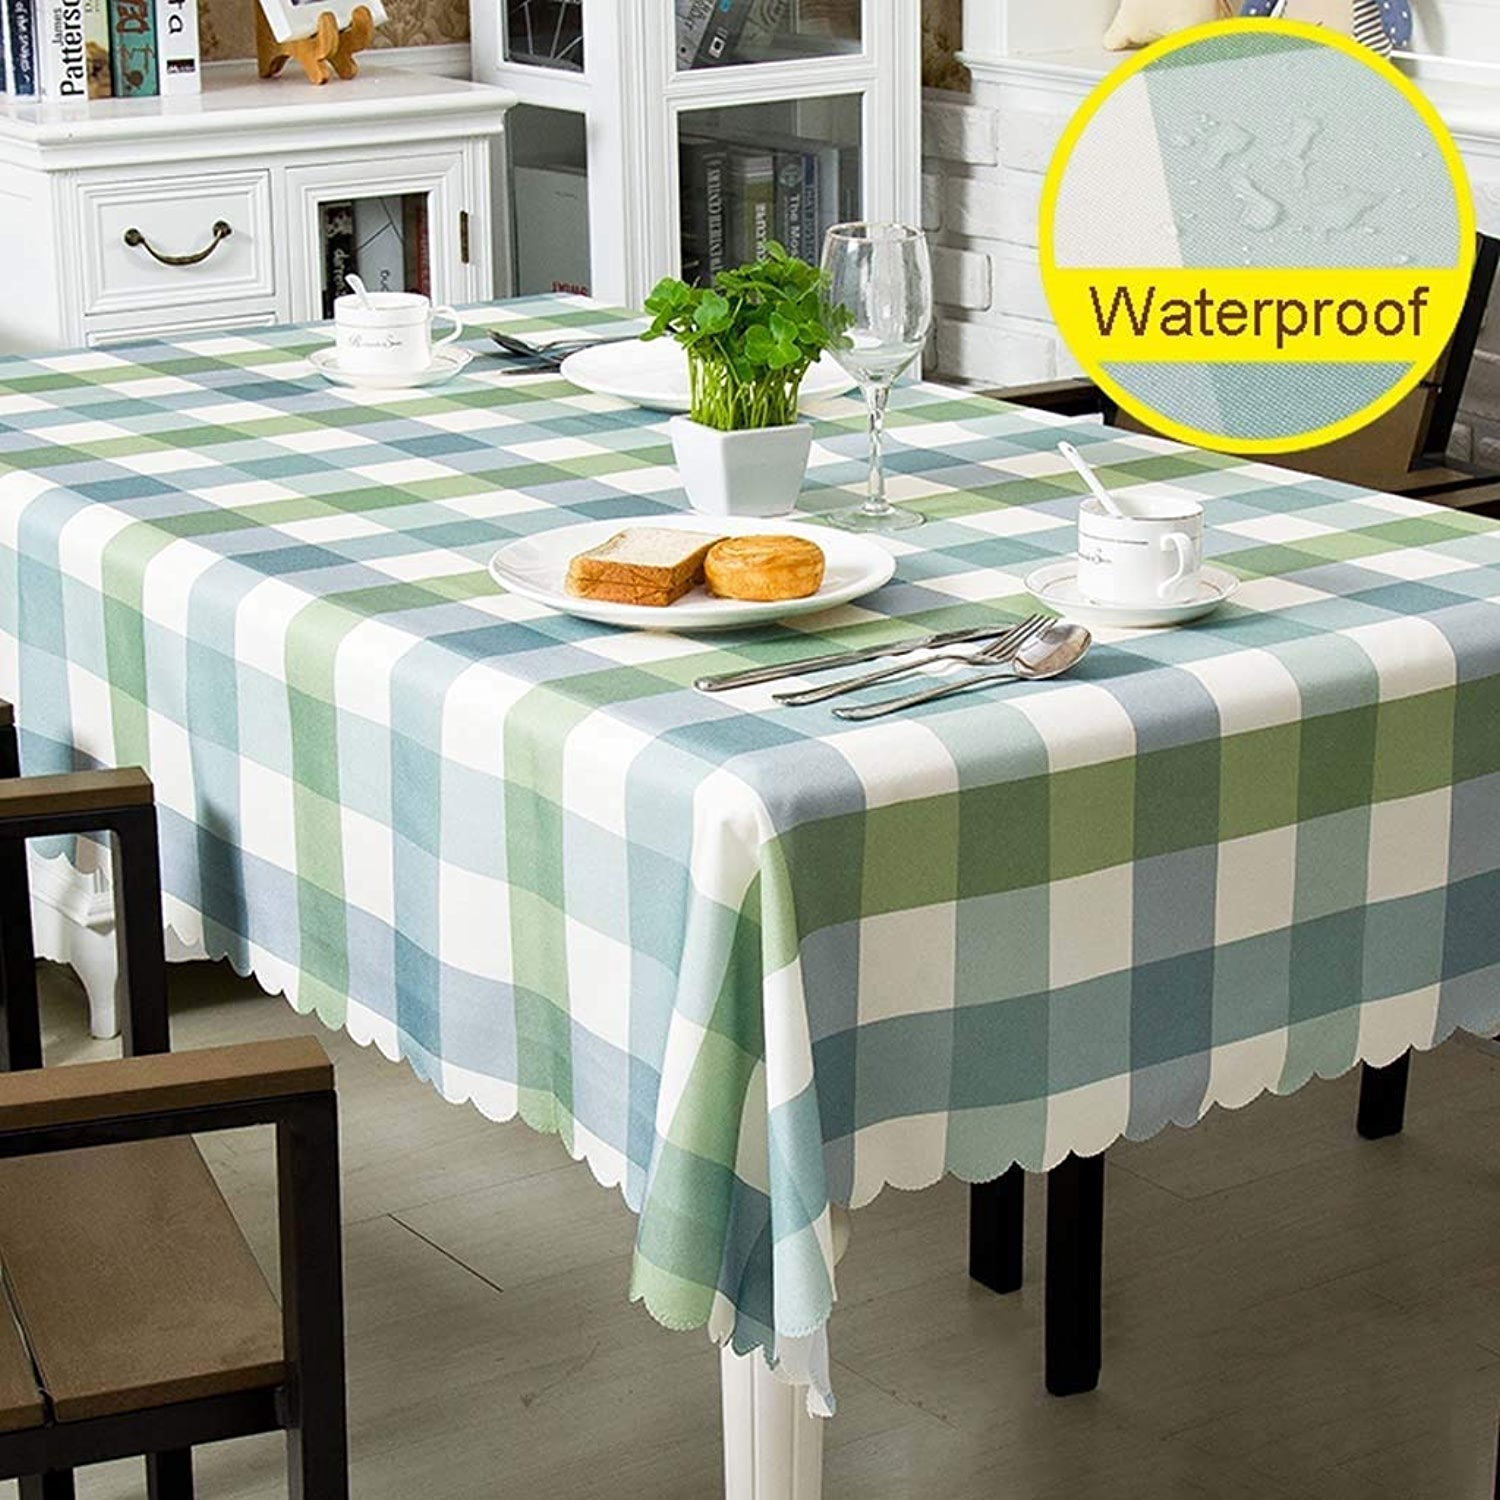 JJSFJH Nappe Nappe en Polyester Imperméable à L'huile Imperméable Imperméable à L'eau Nettoyer Table Table Cover for Cuisine Salon Salle à Manger Moderne Table Nordic Table Rectangle Nappe Coton Table